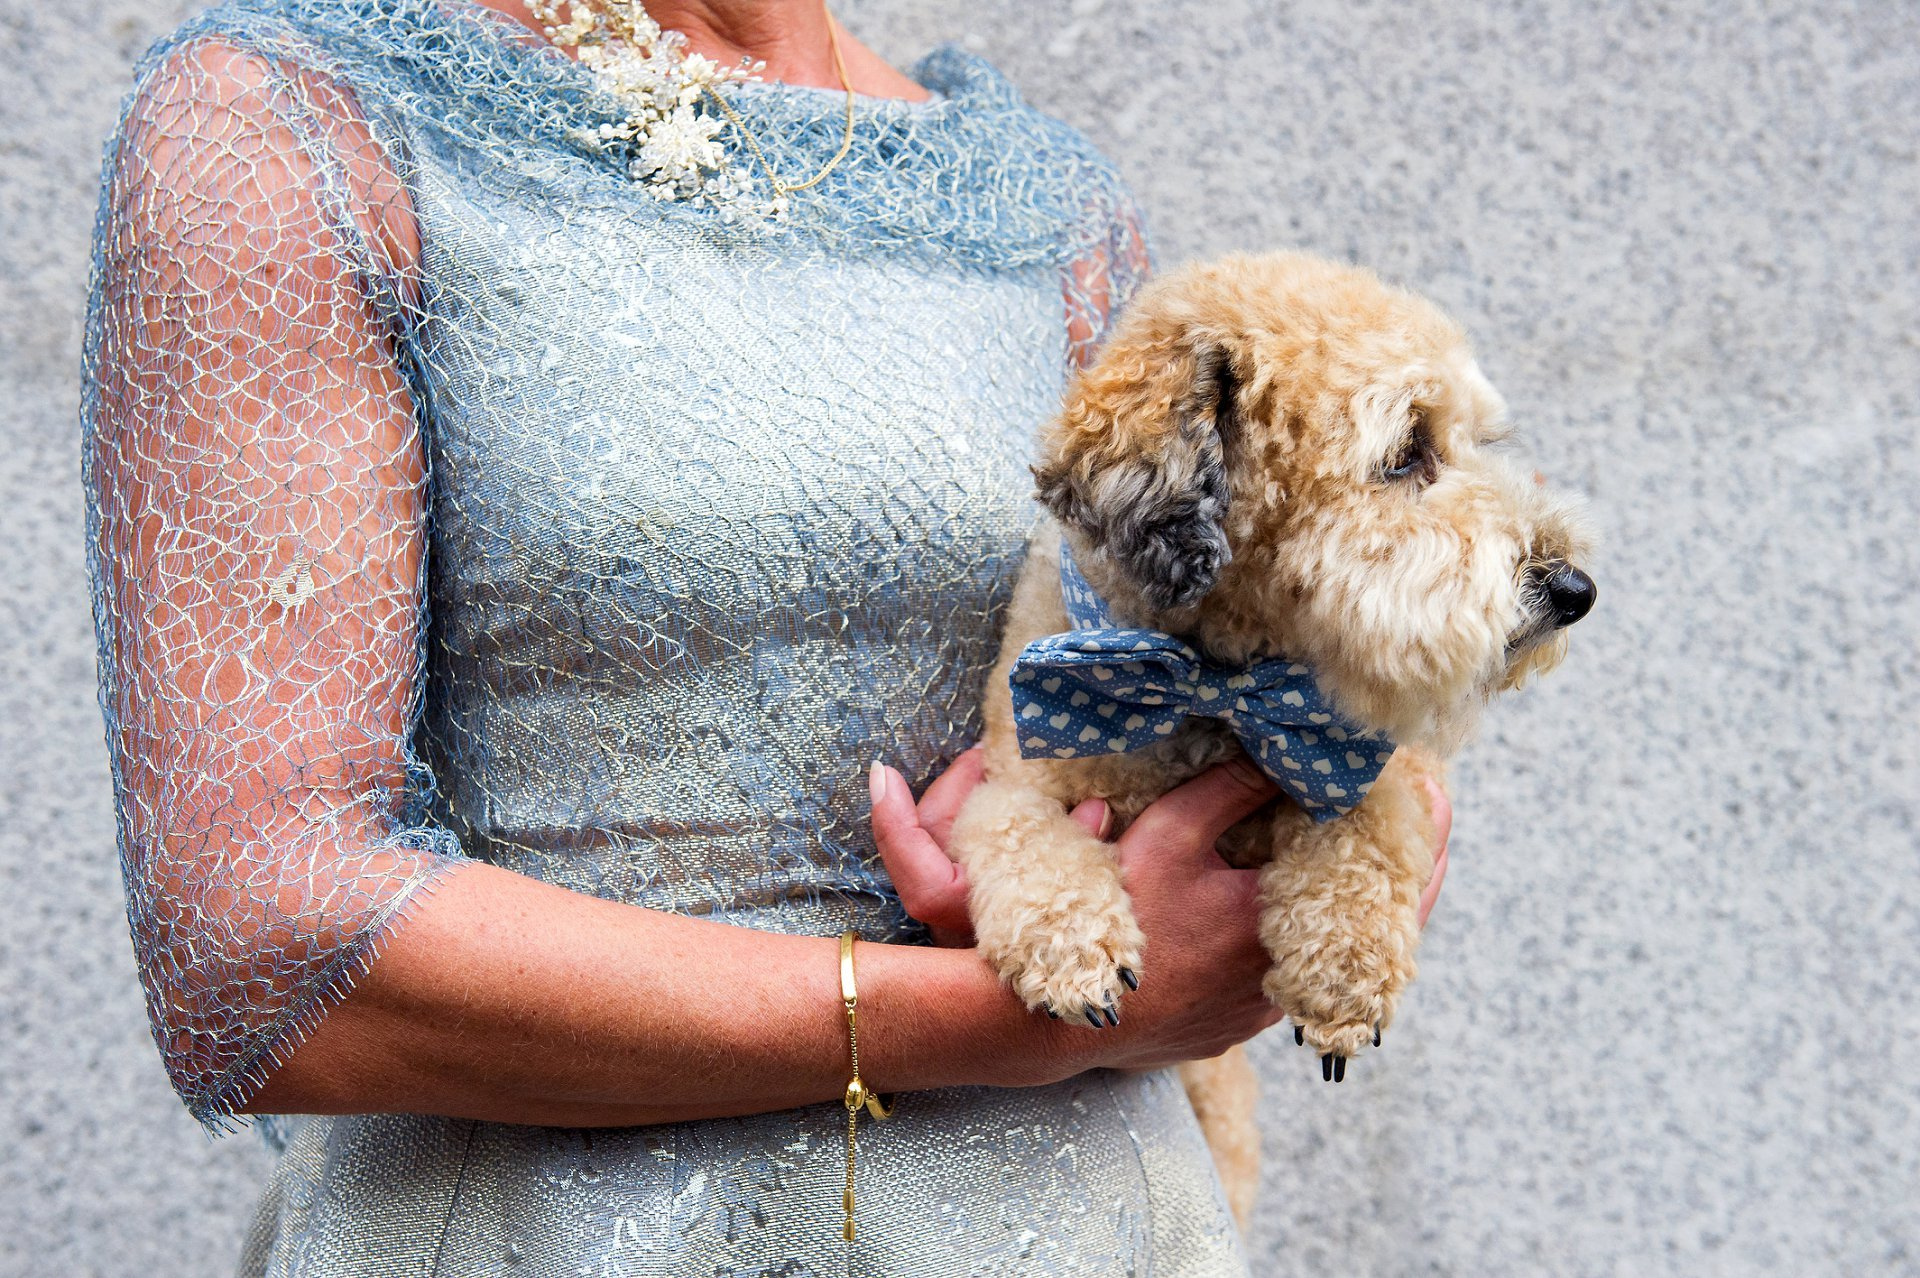 dog wedding photographer london wearing a pale blue and white heart bow tie matching his owner, the bride, in her pale blue and gold metallic wedding dress